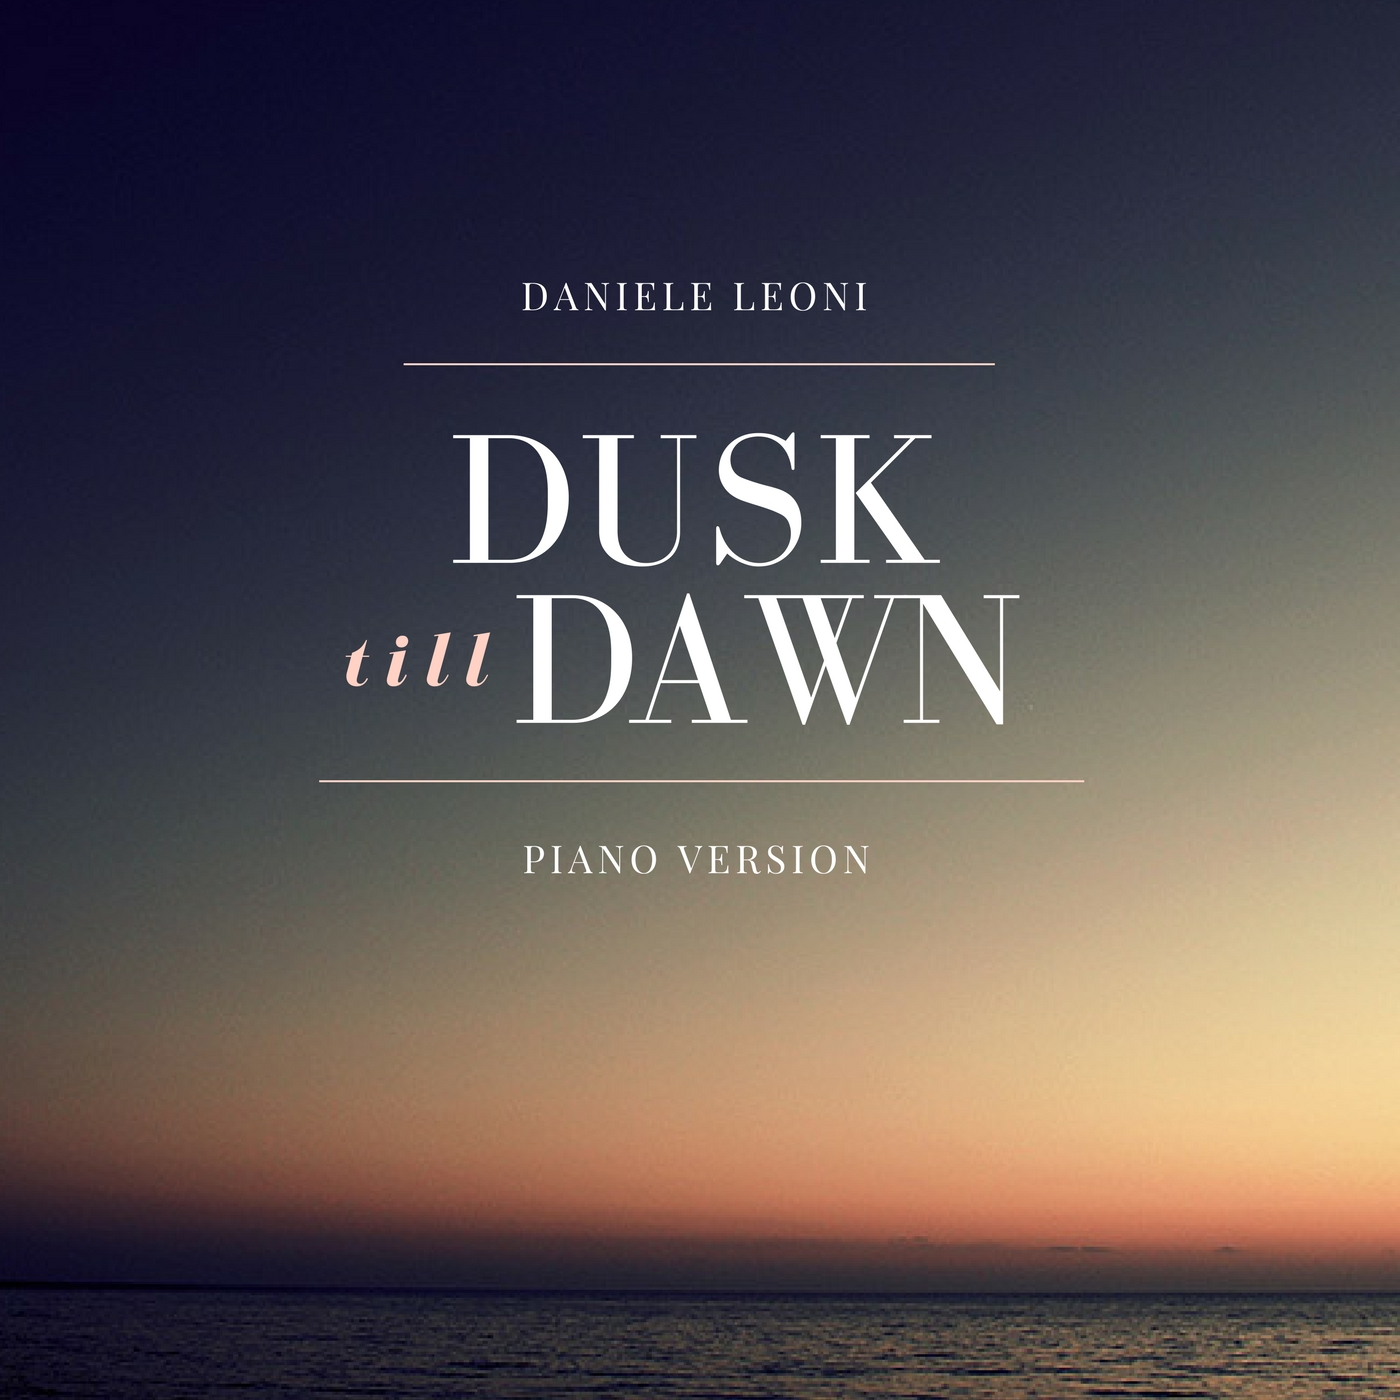 Dusk till Dawn (Piano Version)